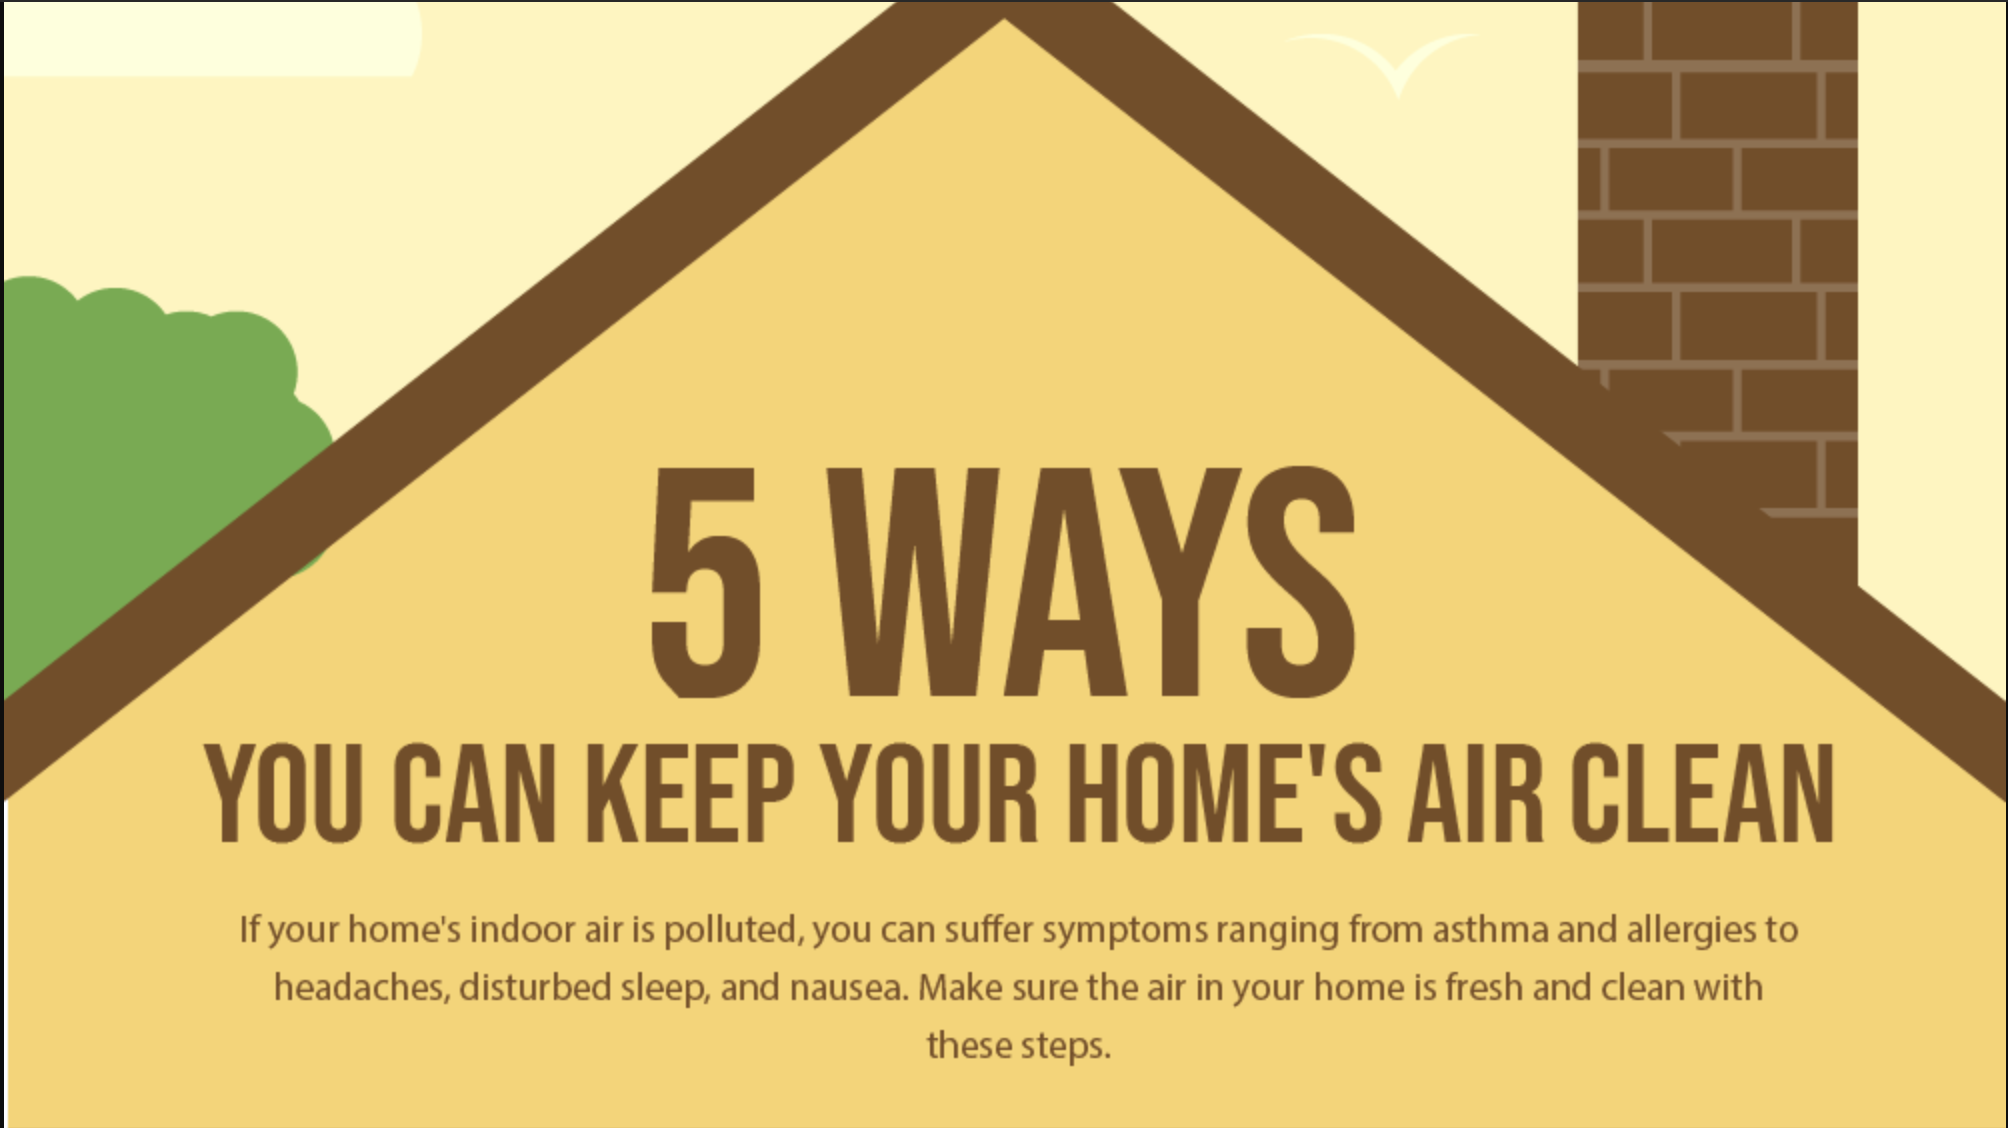 Improving Air Quality in a Home